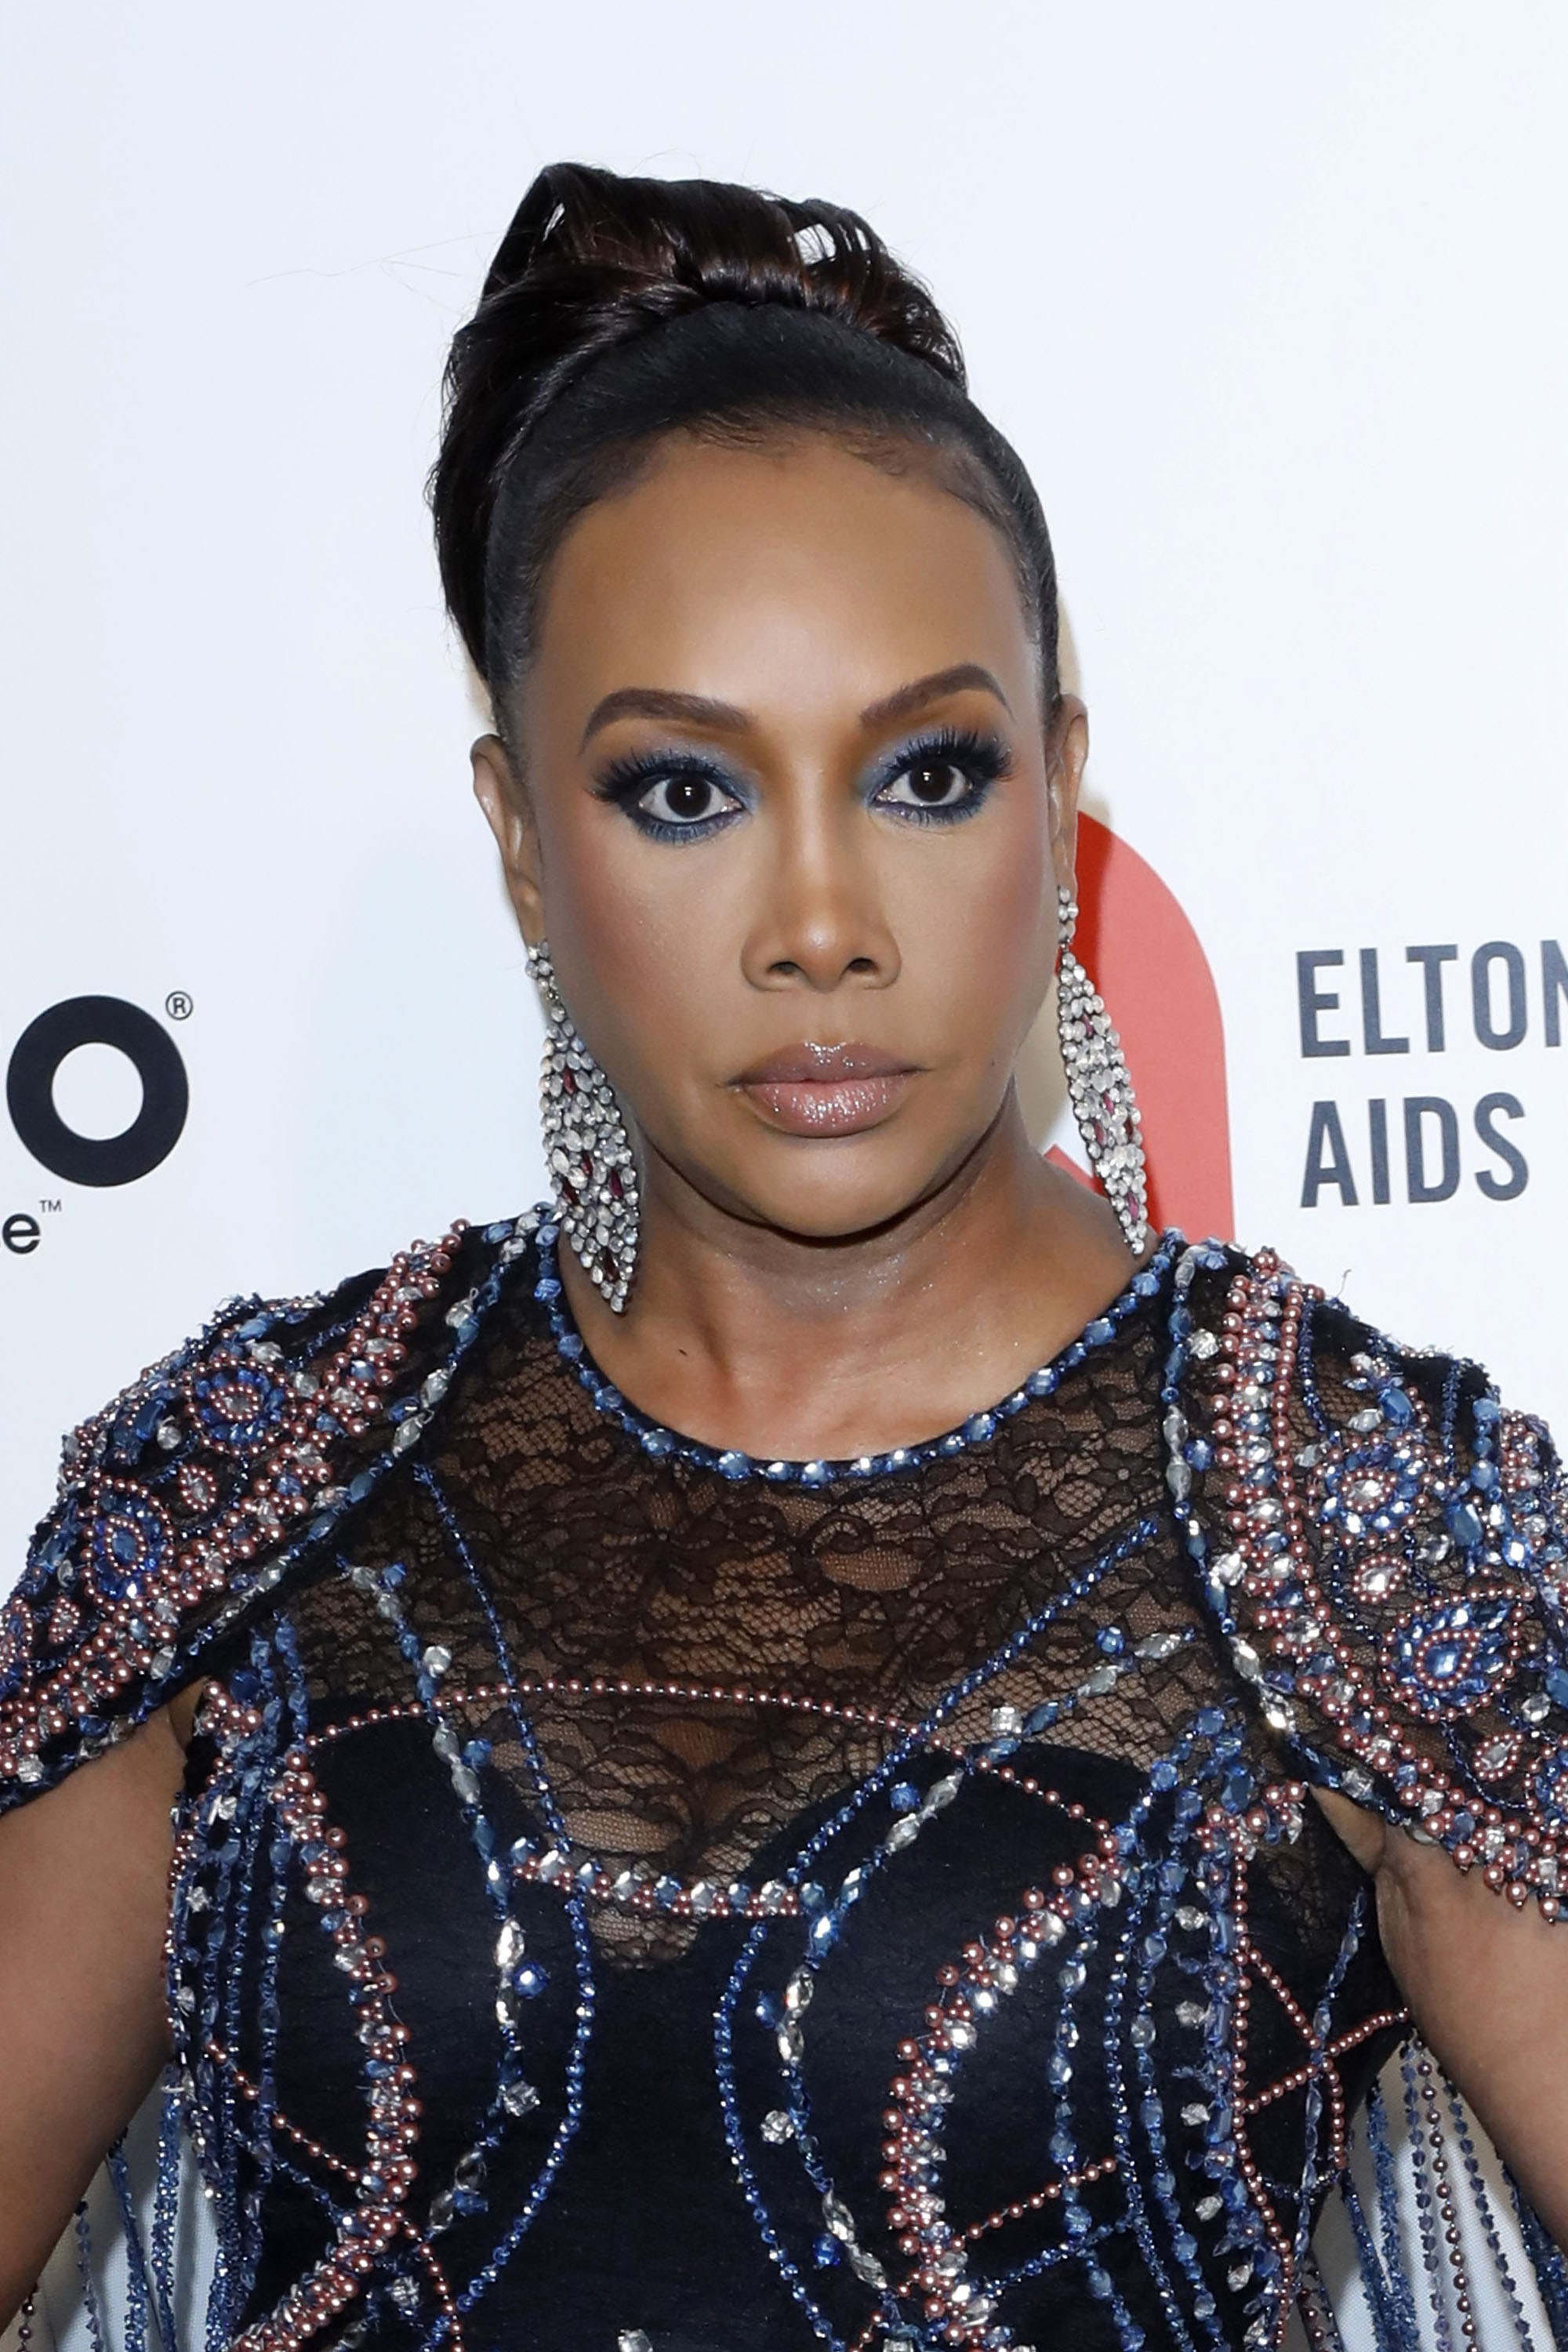 Vivica A Fox at the after-party for Elto...